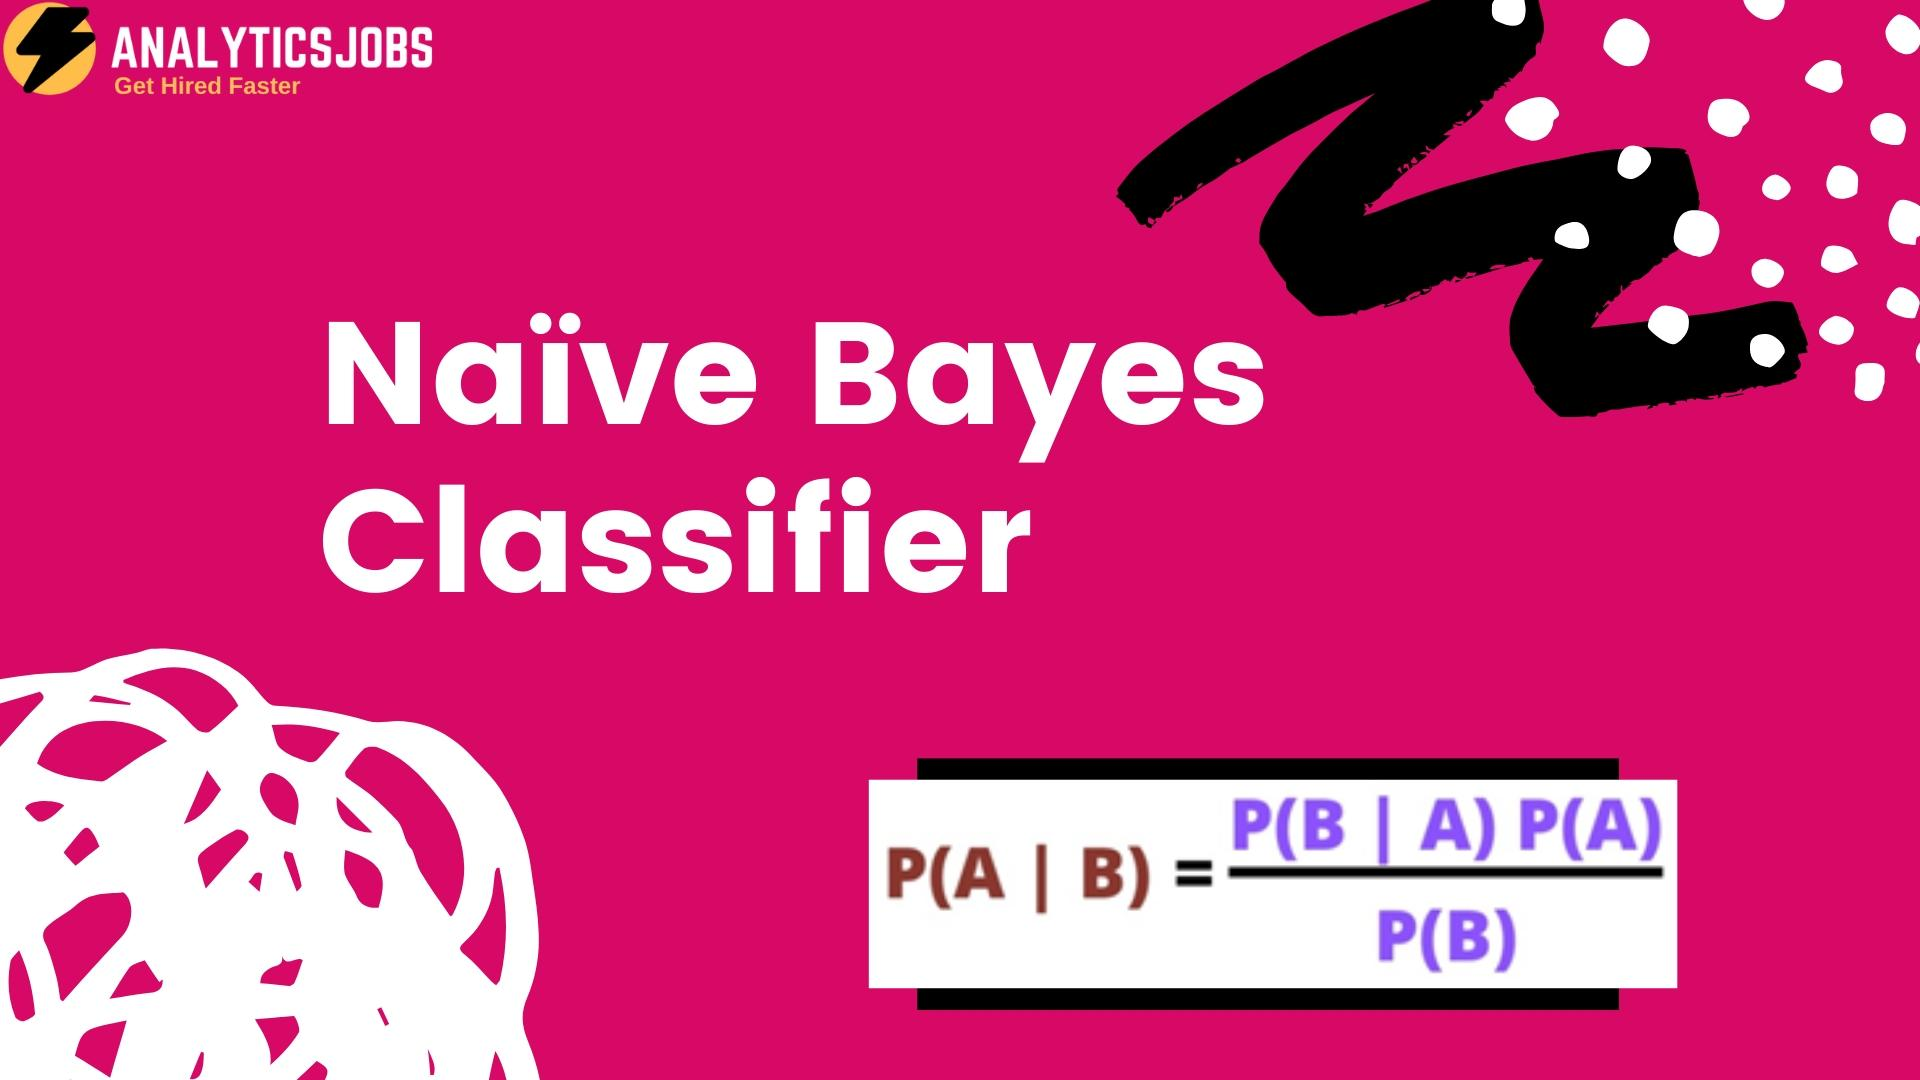 Naive Bayes Classifier in Machine Learning